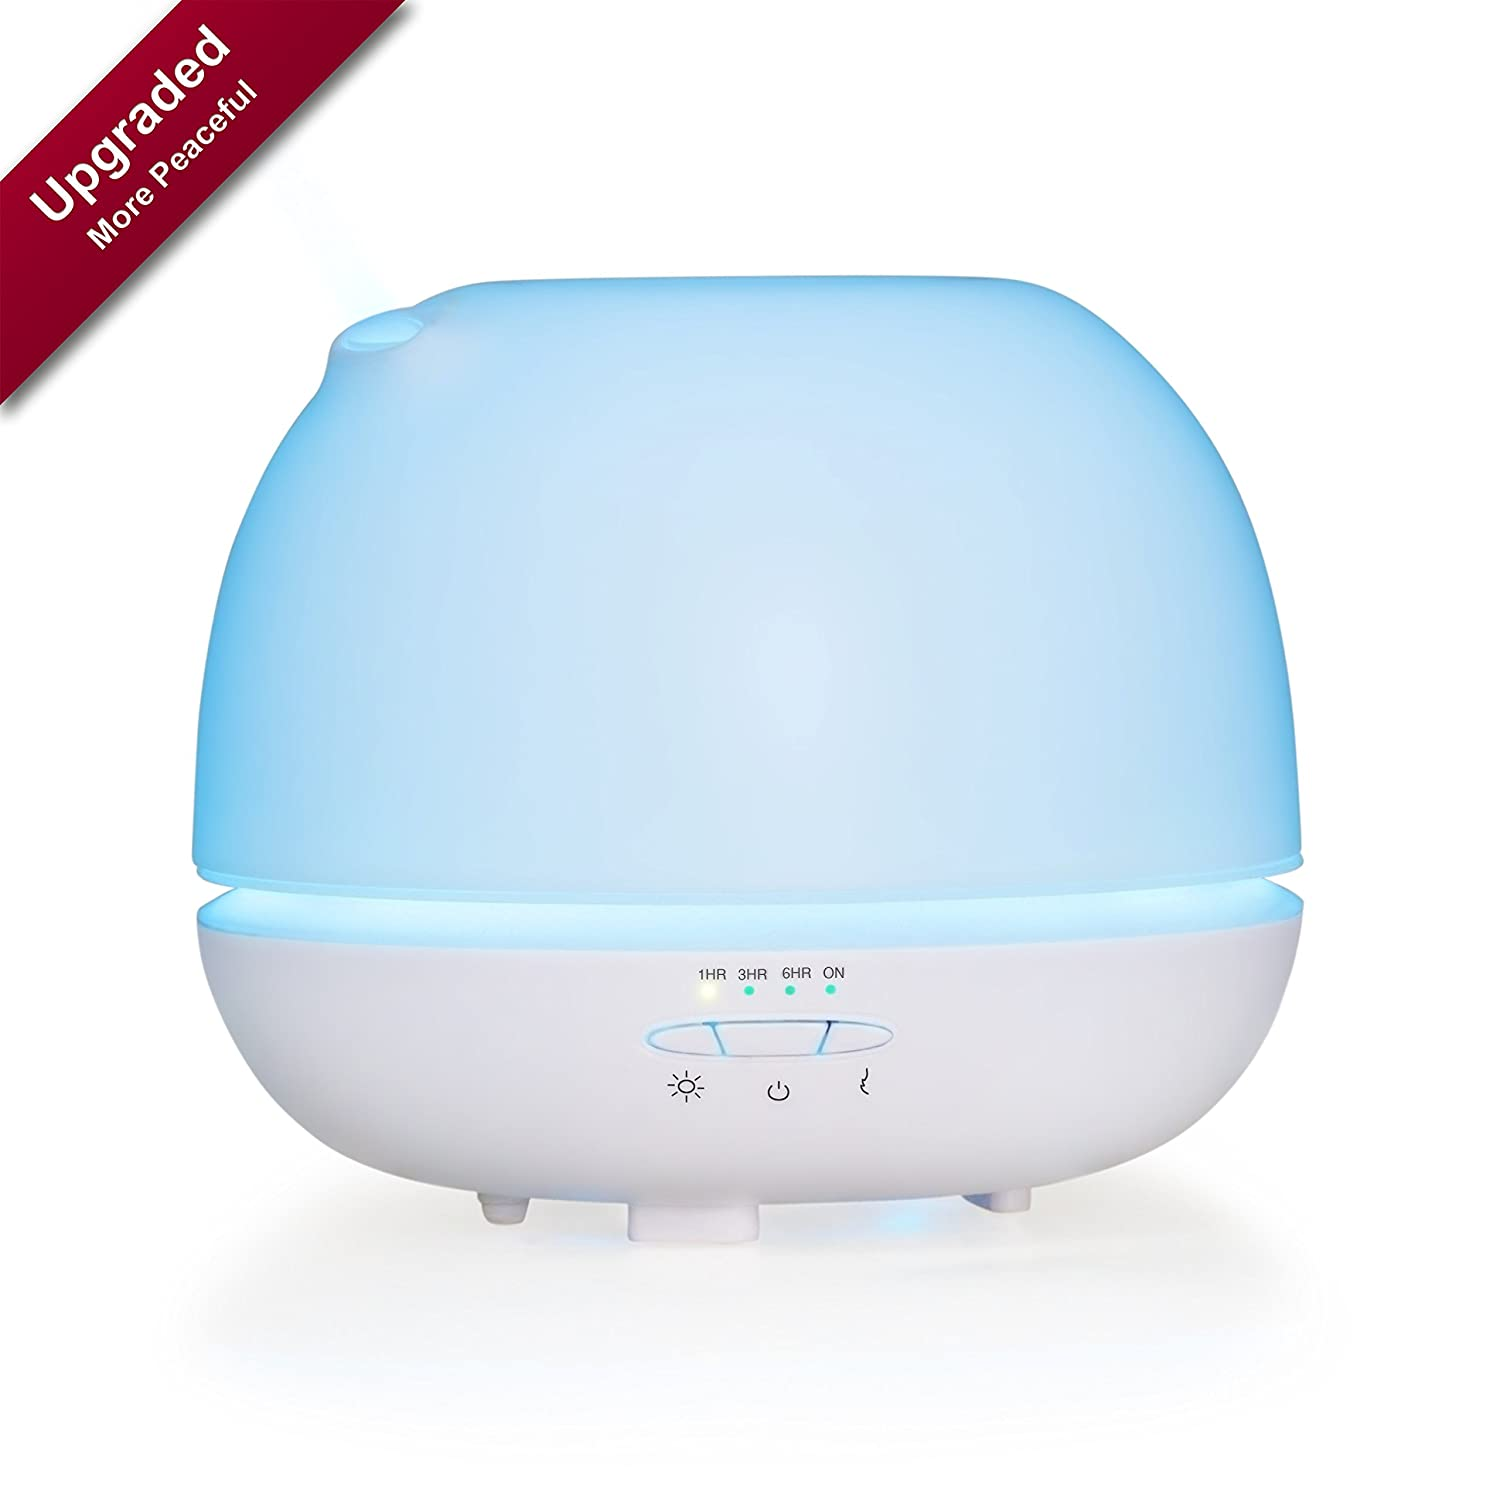 Essential Oil Diffuser Walmart ~ Vafee ml aromatherapy essential oil diffuser cool mist